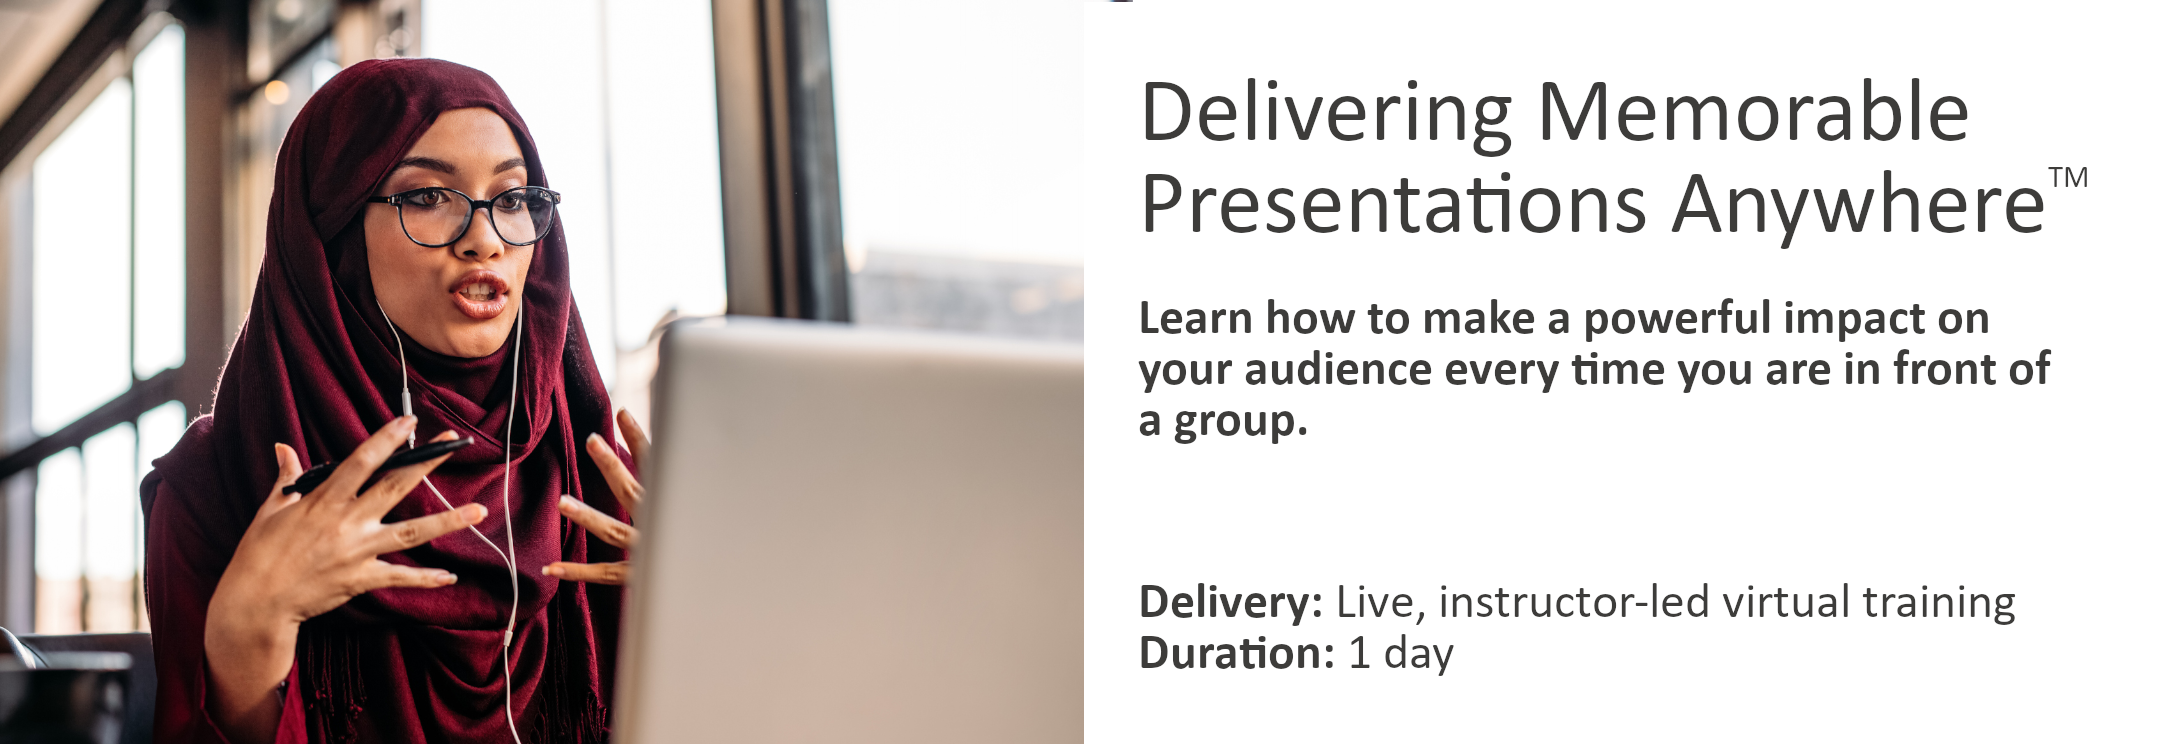 Delivering Memorable Presentations Anywhere